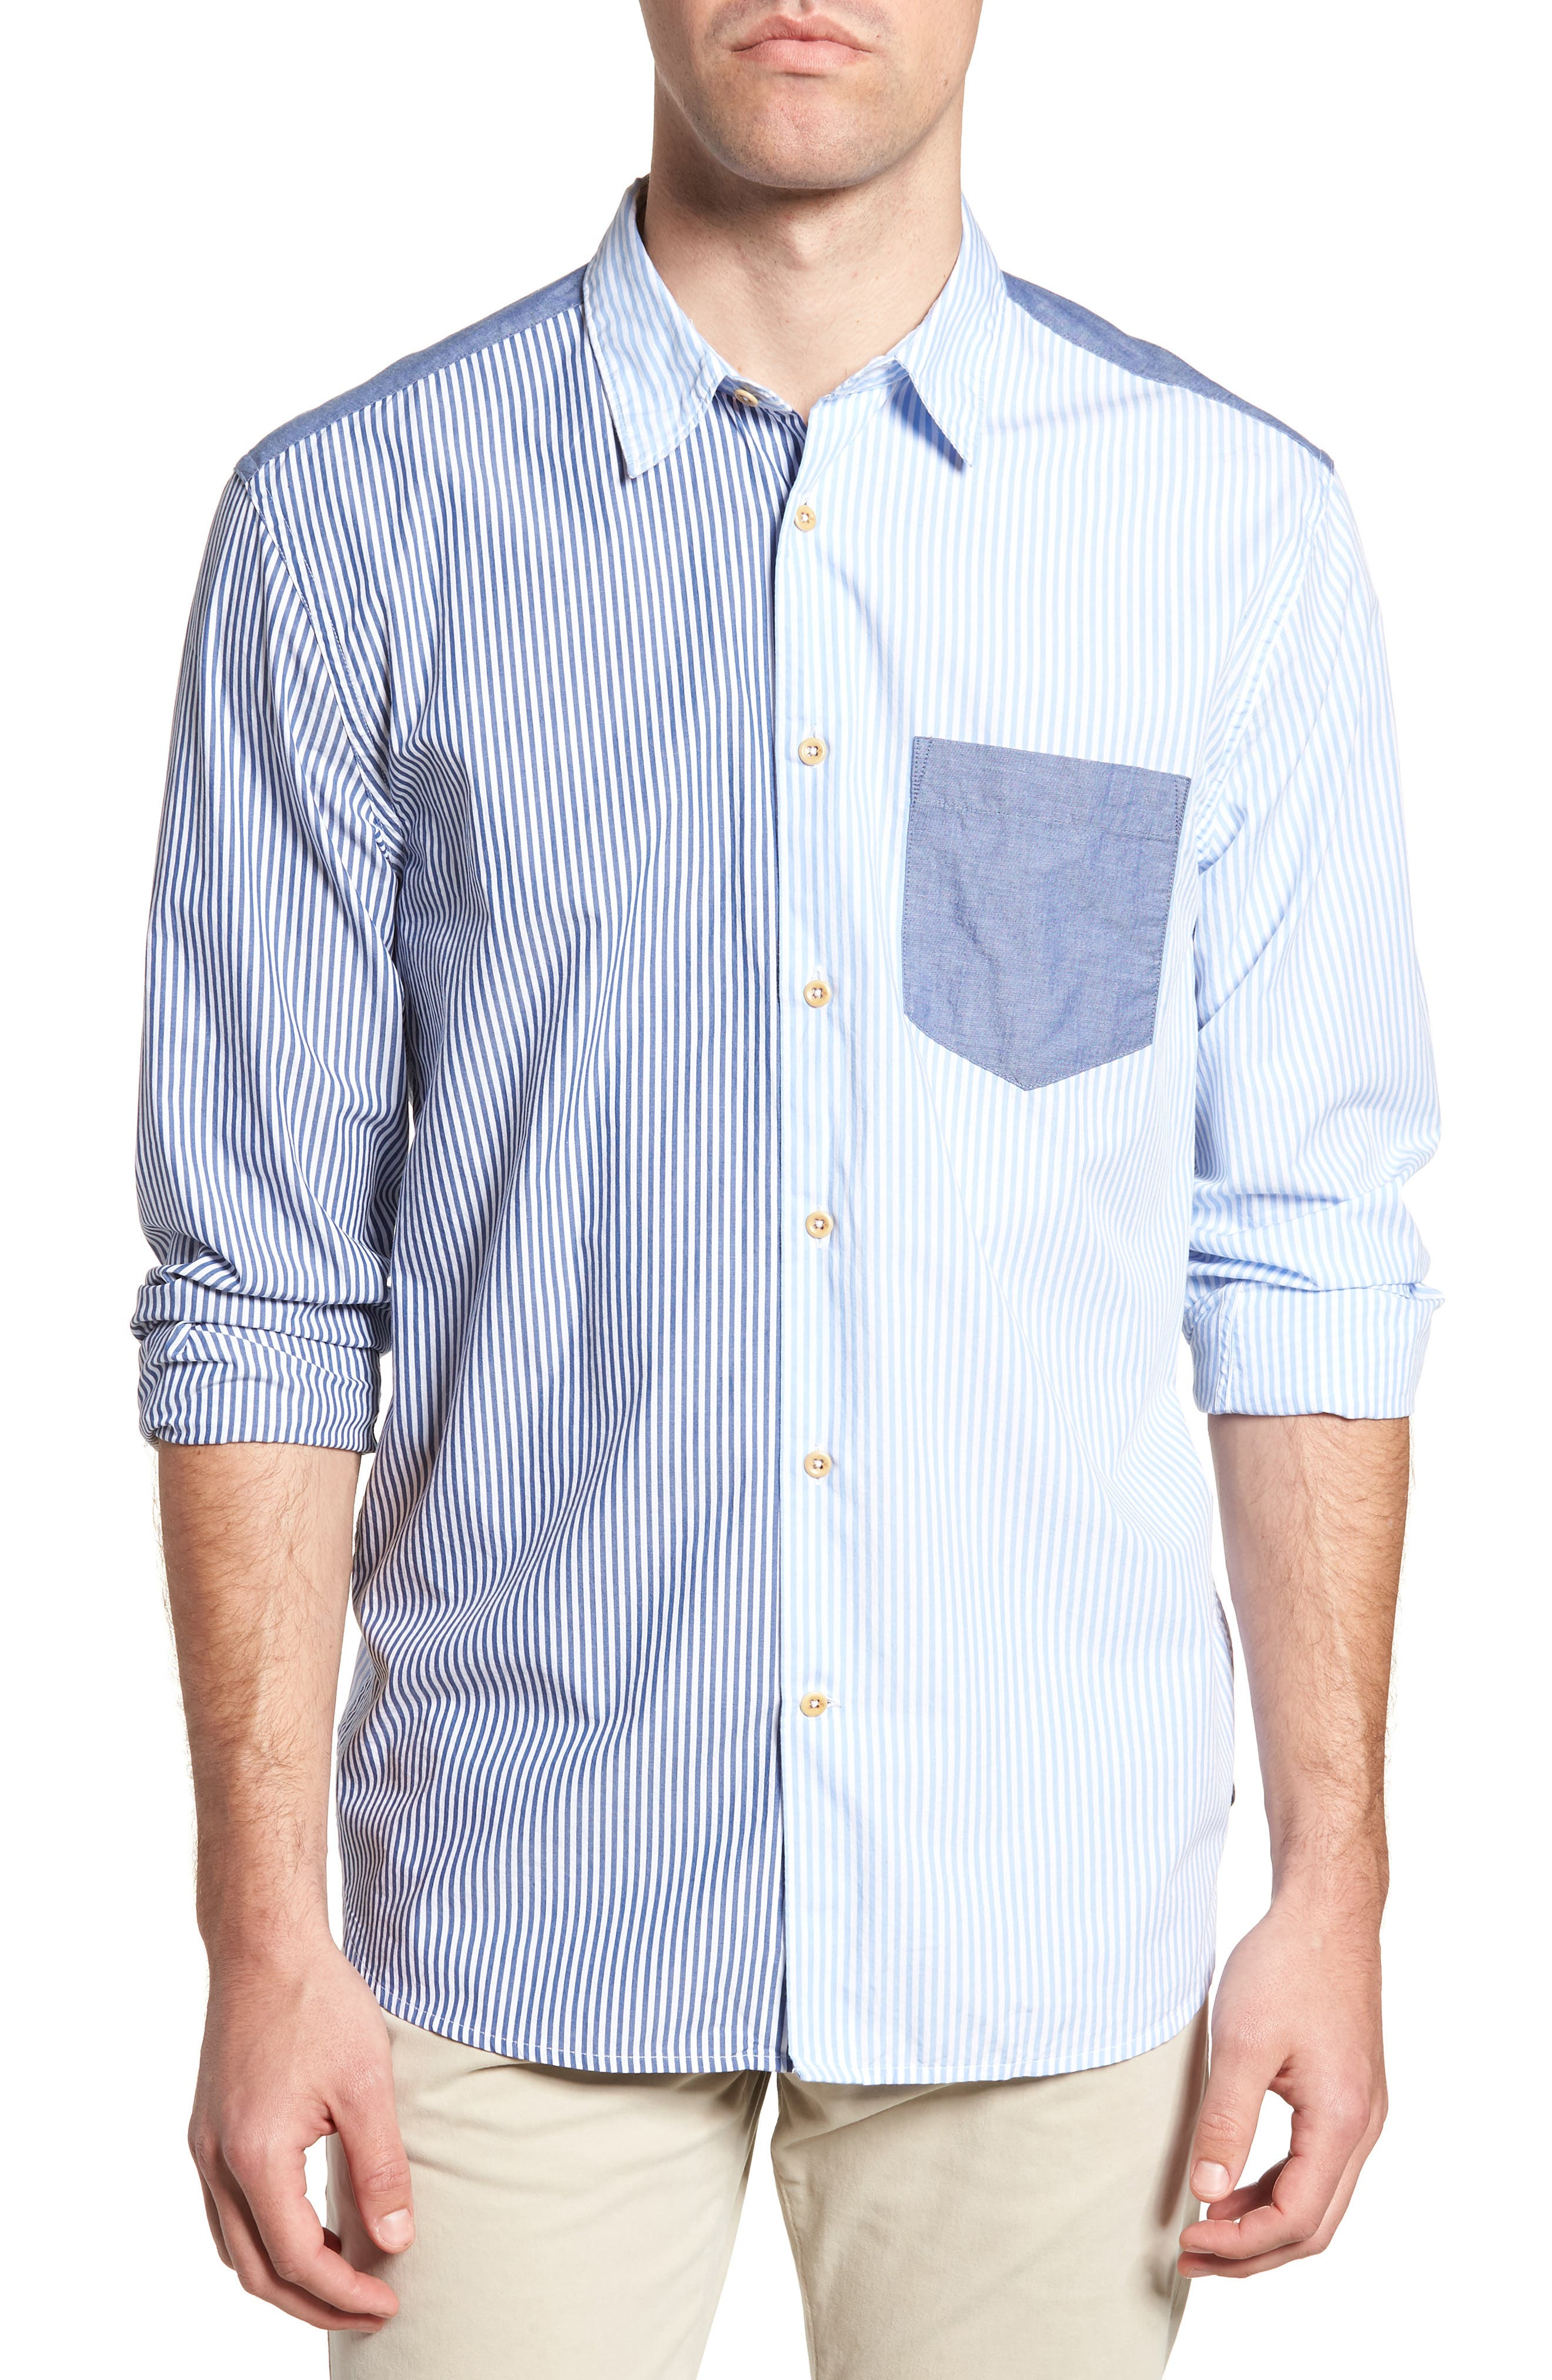 Patchwork Relaxed Fit Sport Shirt,                             Main thumbnail 1, color,                             Blue Blood